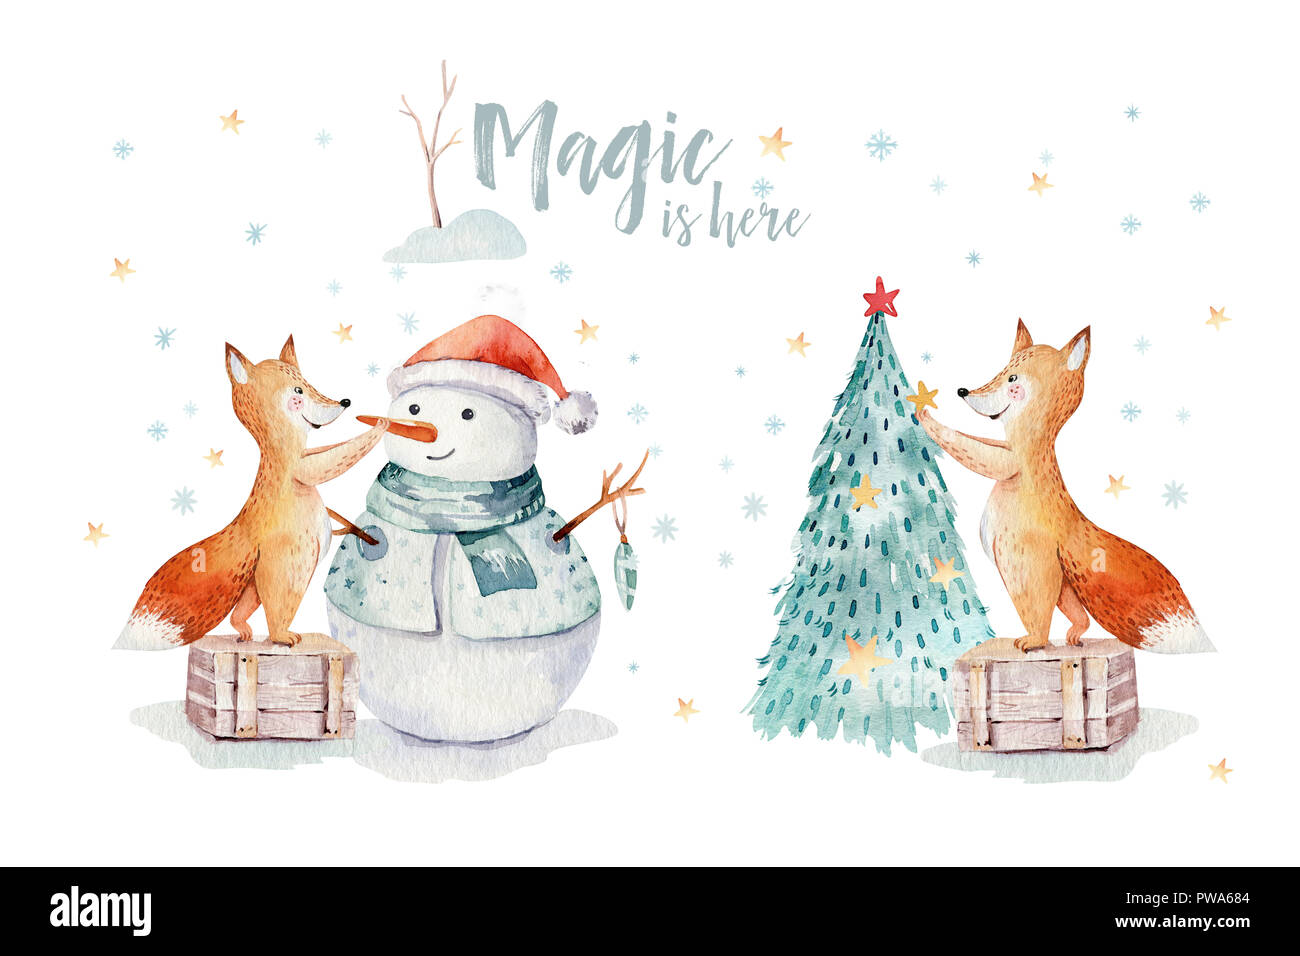 Merry Christmas Illustration.Watercolor Merry Christmas Illustration With Snowman